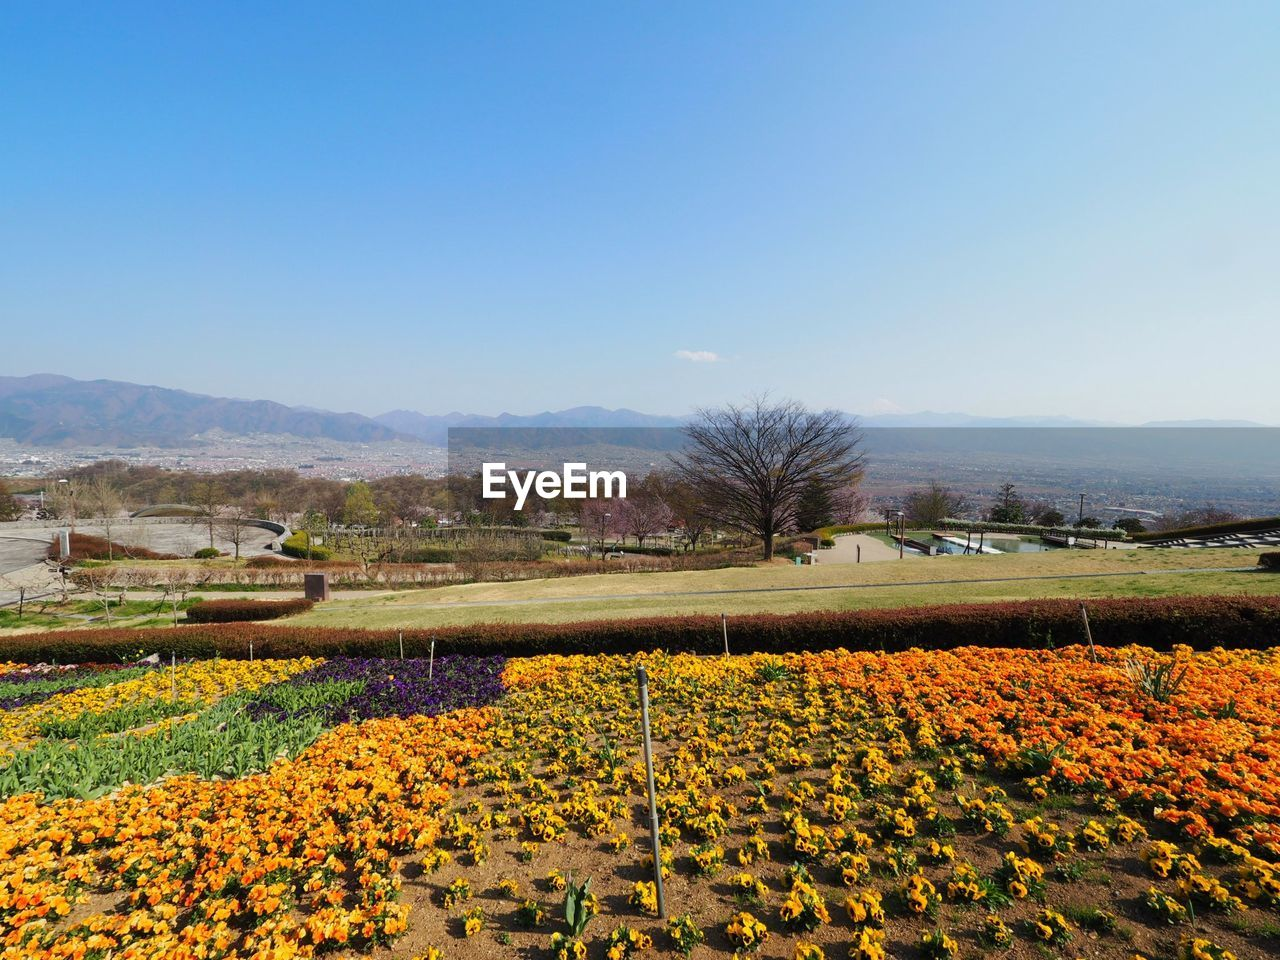 flower, beauty in nature, nature, growth, tranquil scene, landscape, field, tranquility, scenics, day, agriculture, clear sky, outdoors, mountain, plant, no people, freshness, yellow, flowerbed, tree, rural scene, fragility, water, sky, flower head